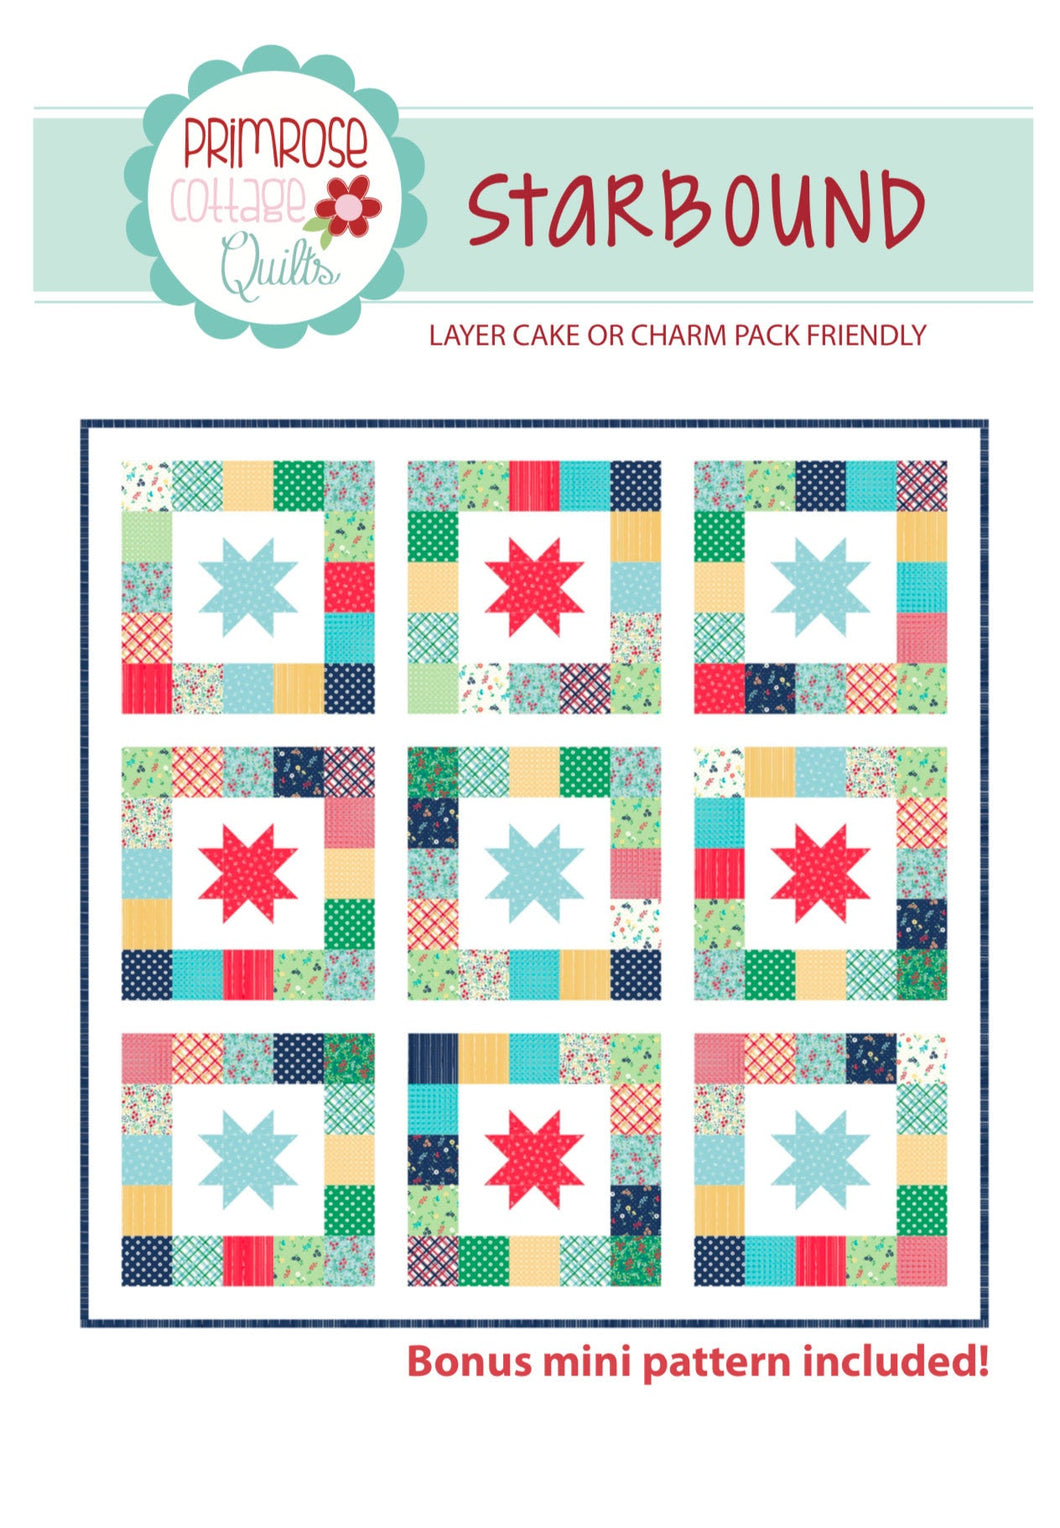 Starbound Quilt Pattern by Lindsey Weight for Primrose Cottage Quilts